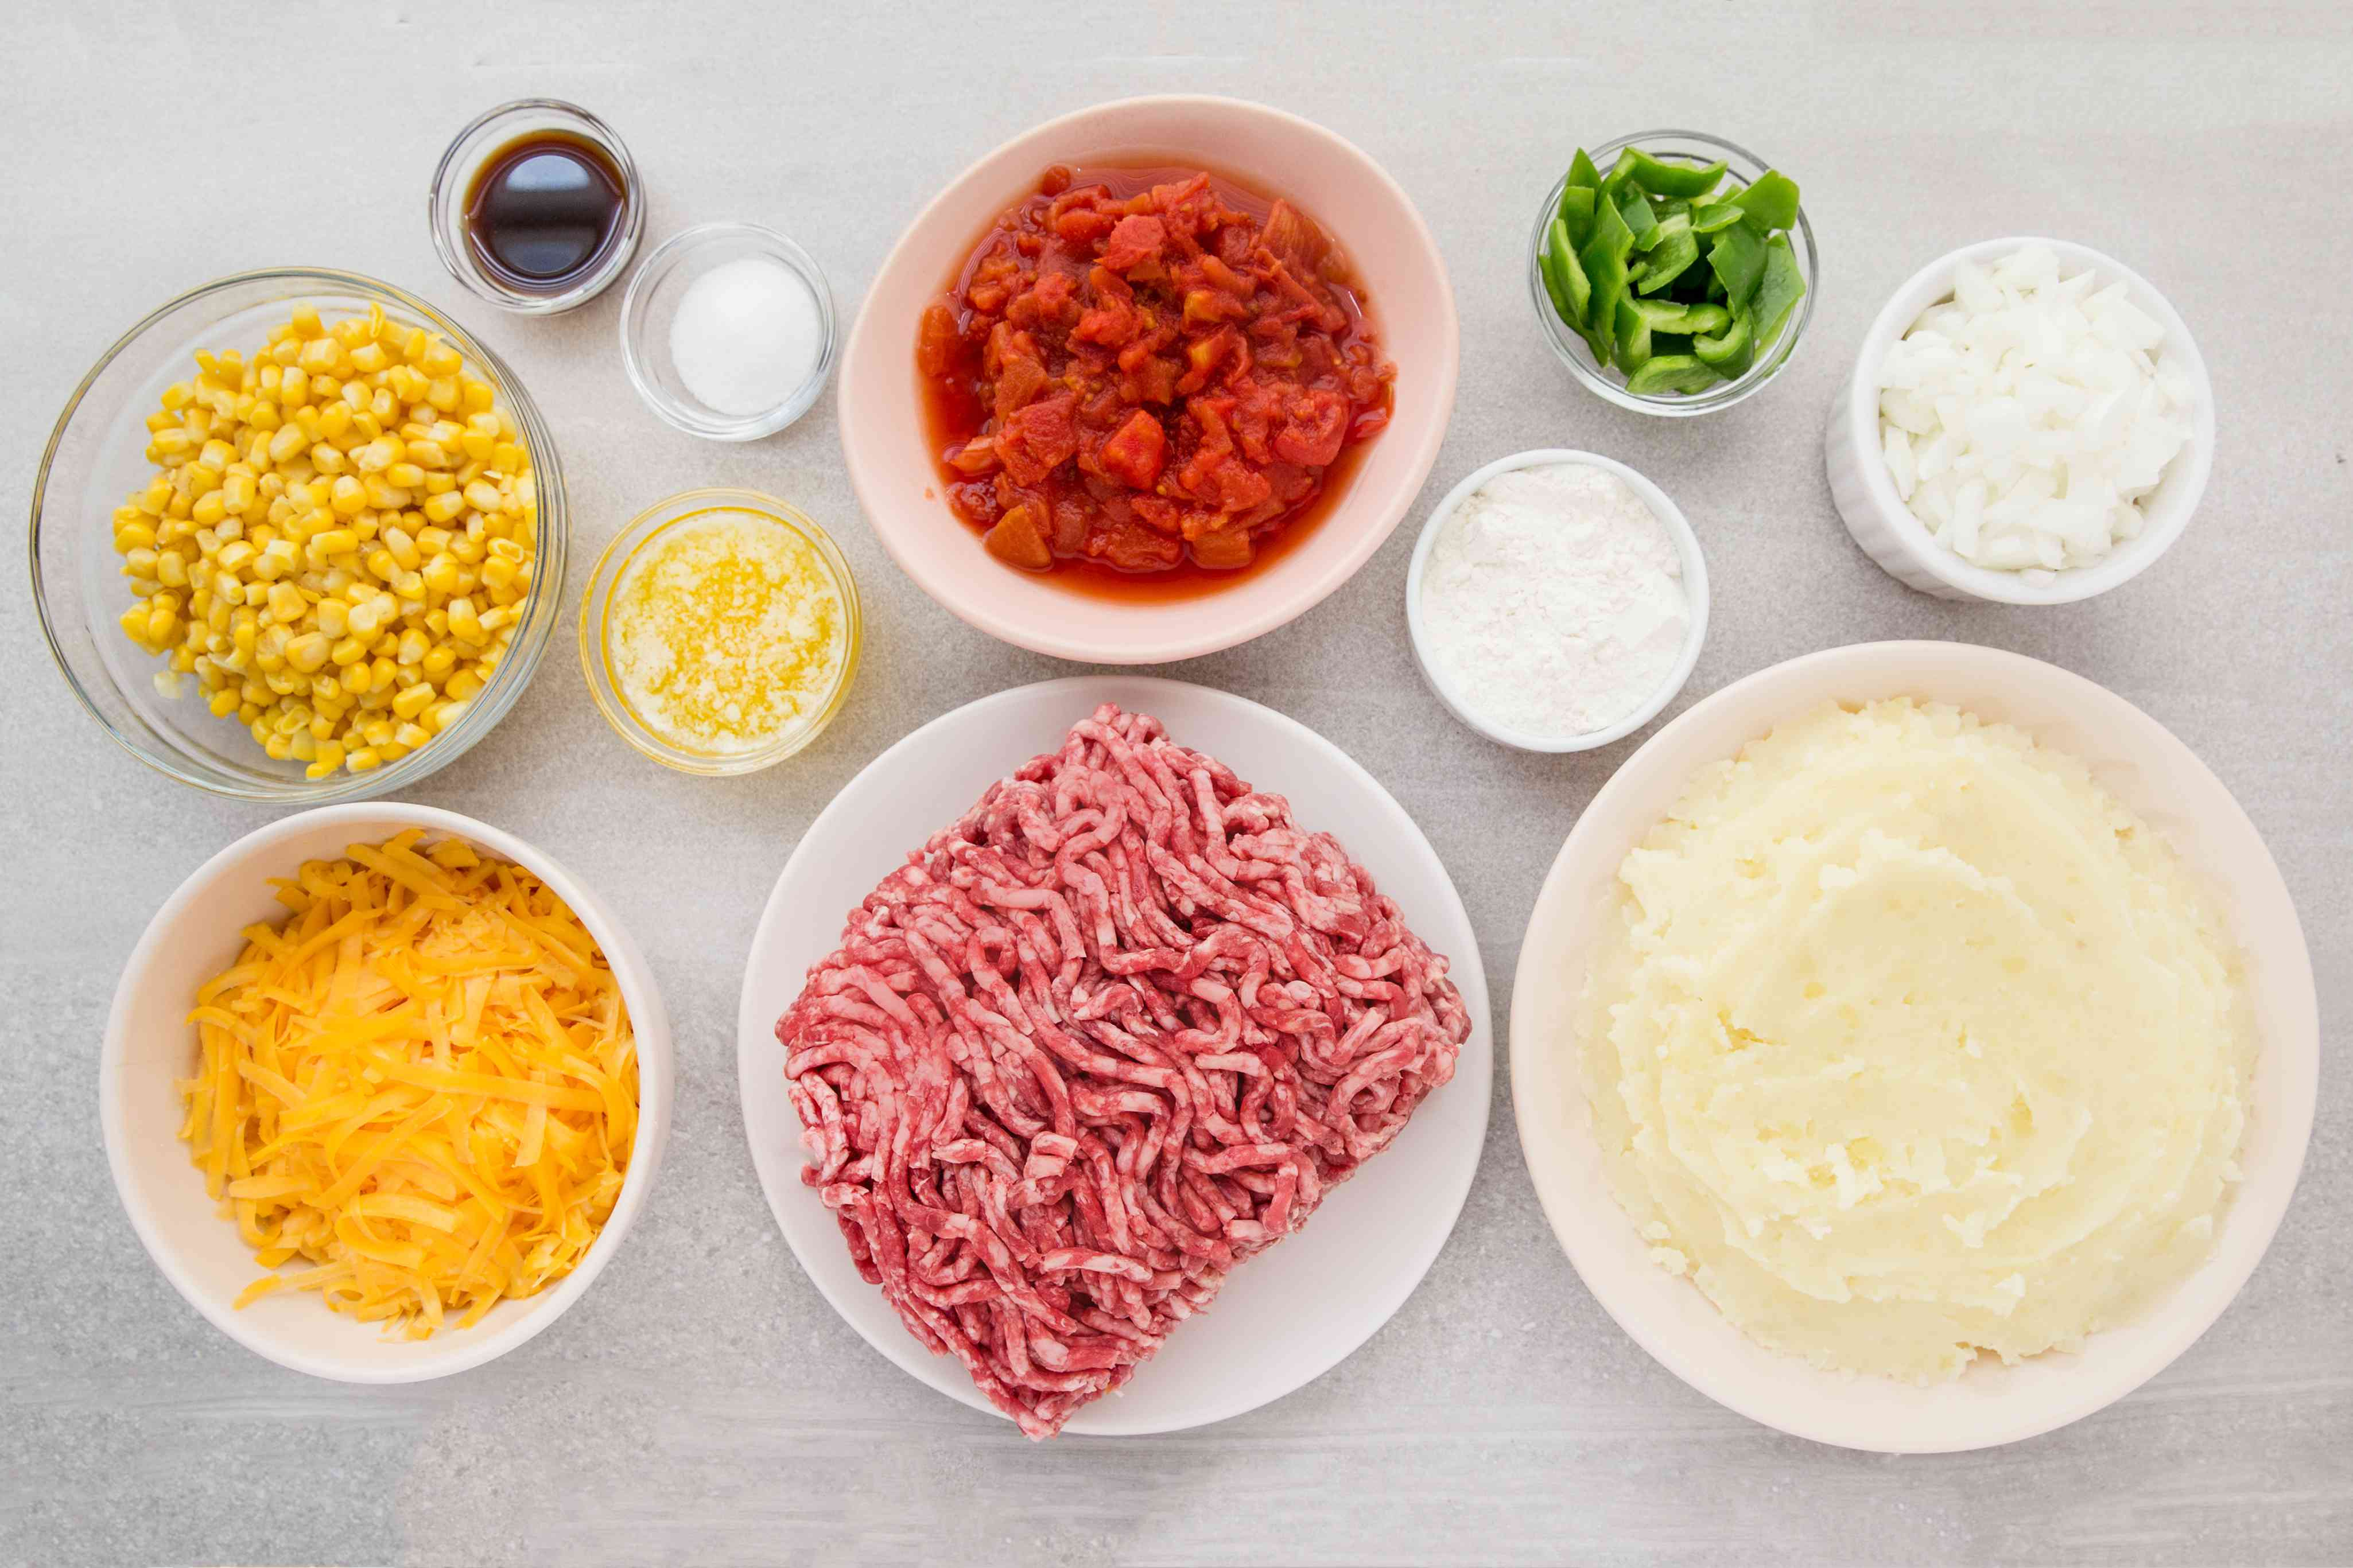 Ground Beef Casserole With Potatoes and Cheese ingredients